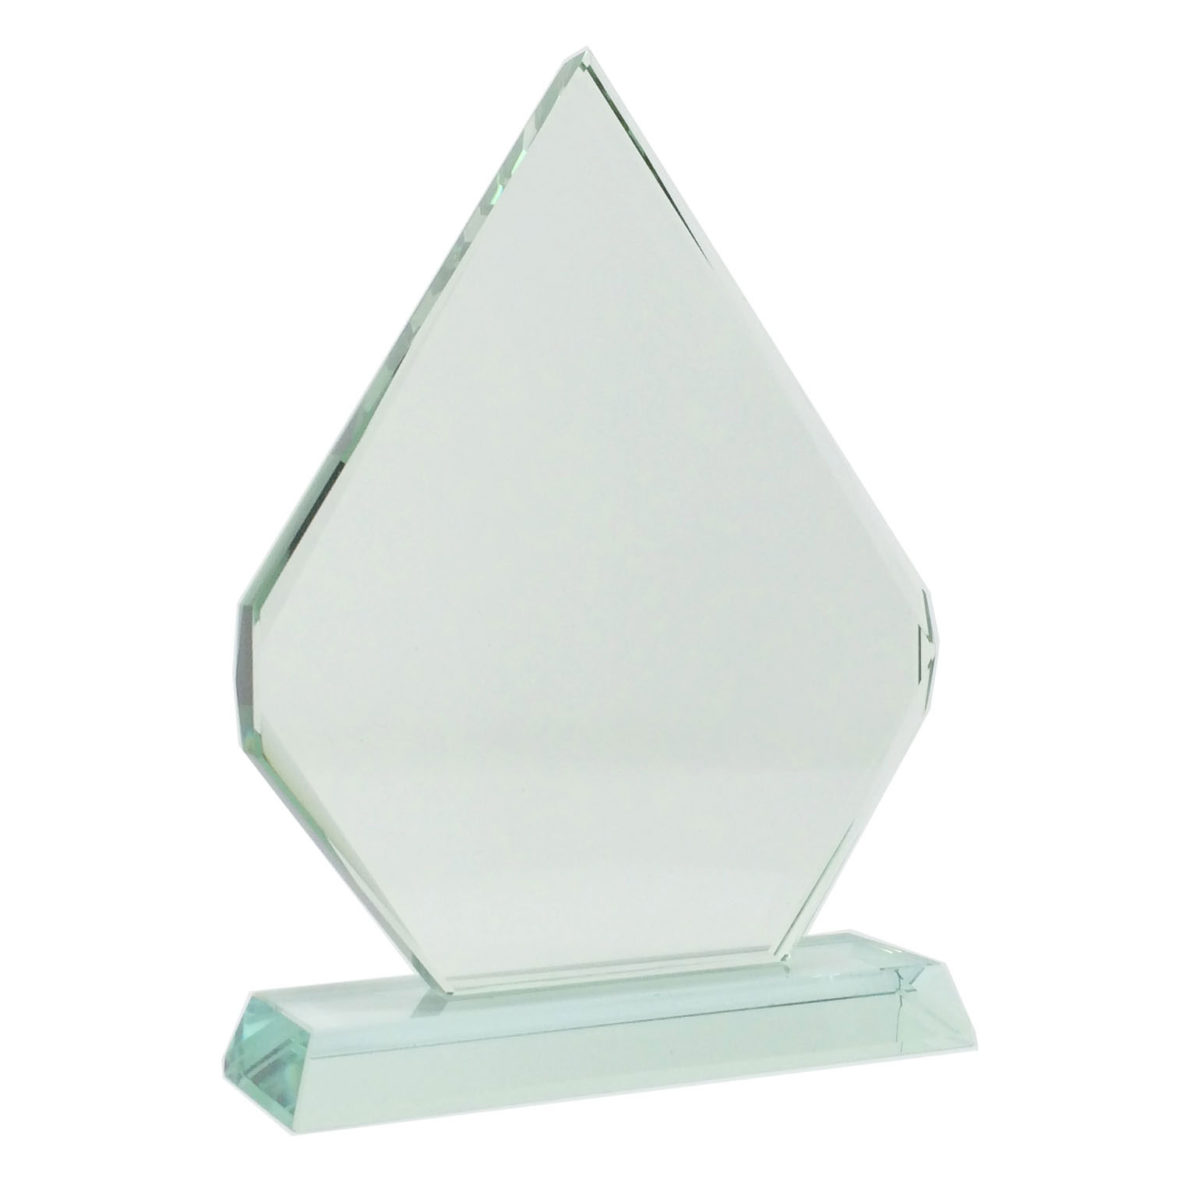 Diamond-trophy-in-jade-glass